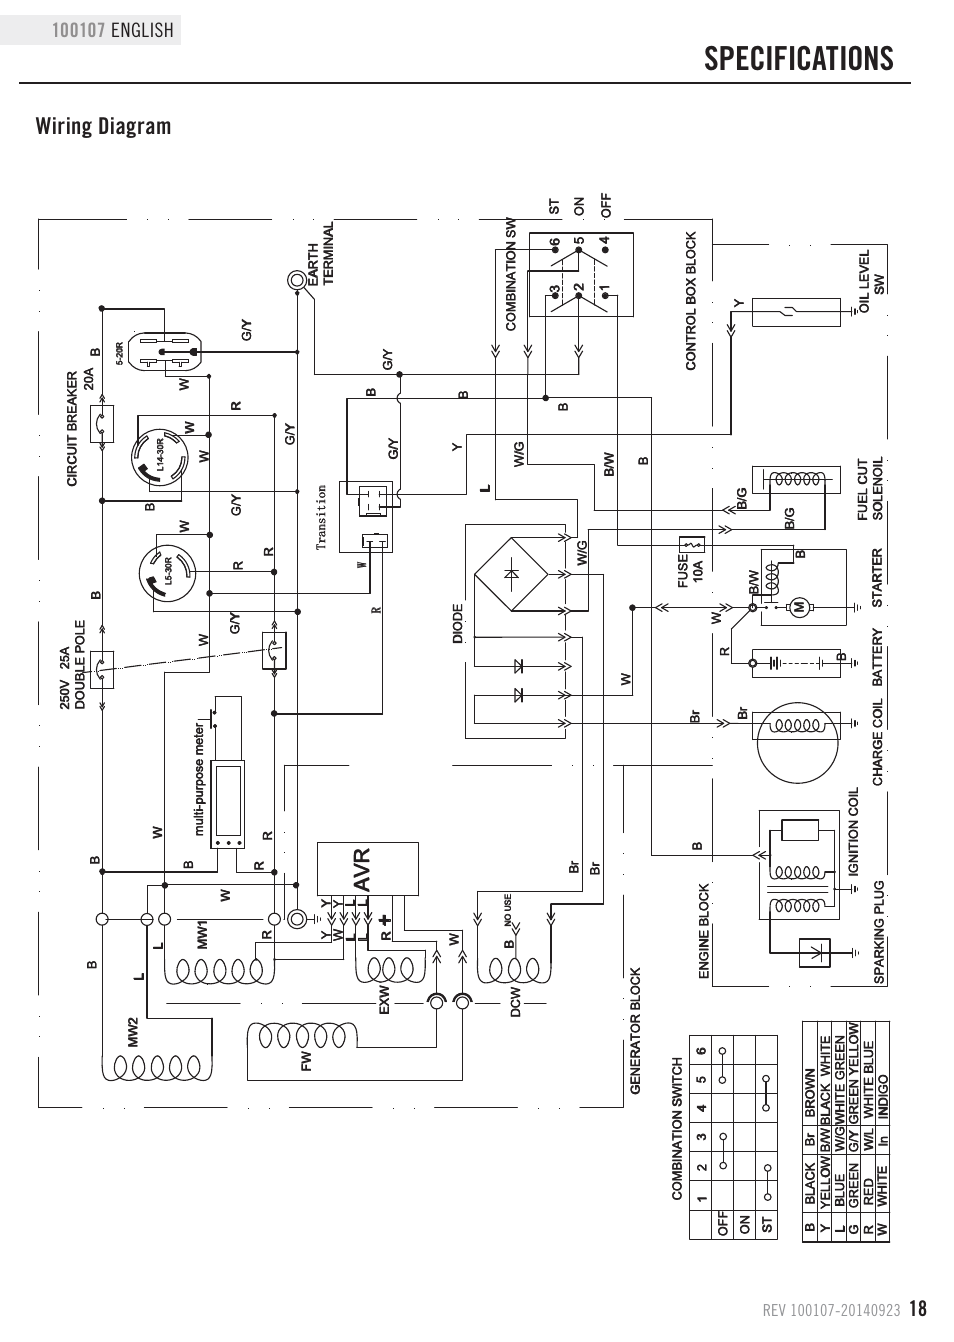 [DIAGRAM] Wiring Diagram For Champion Generator FULL